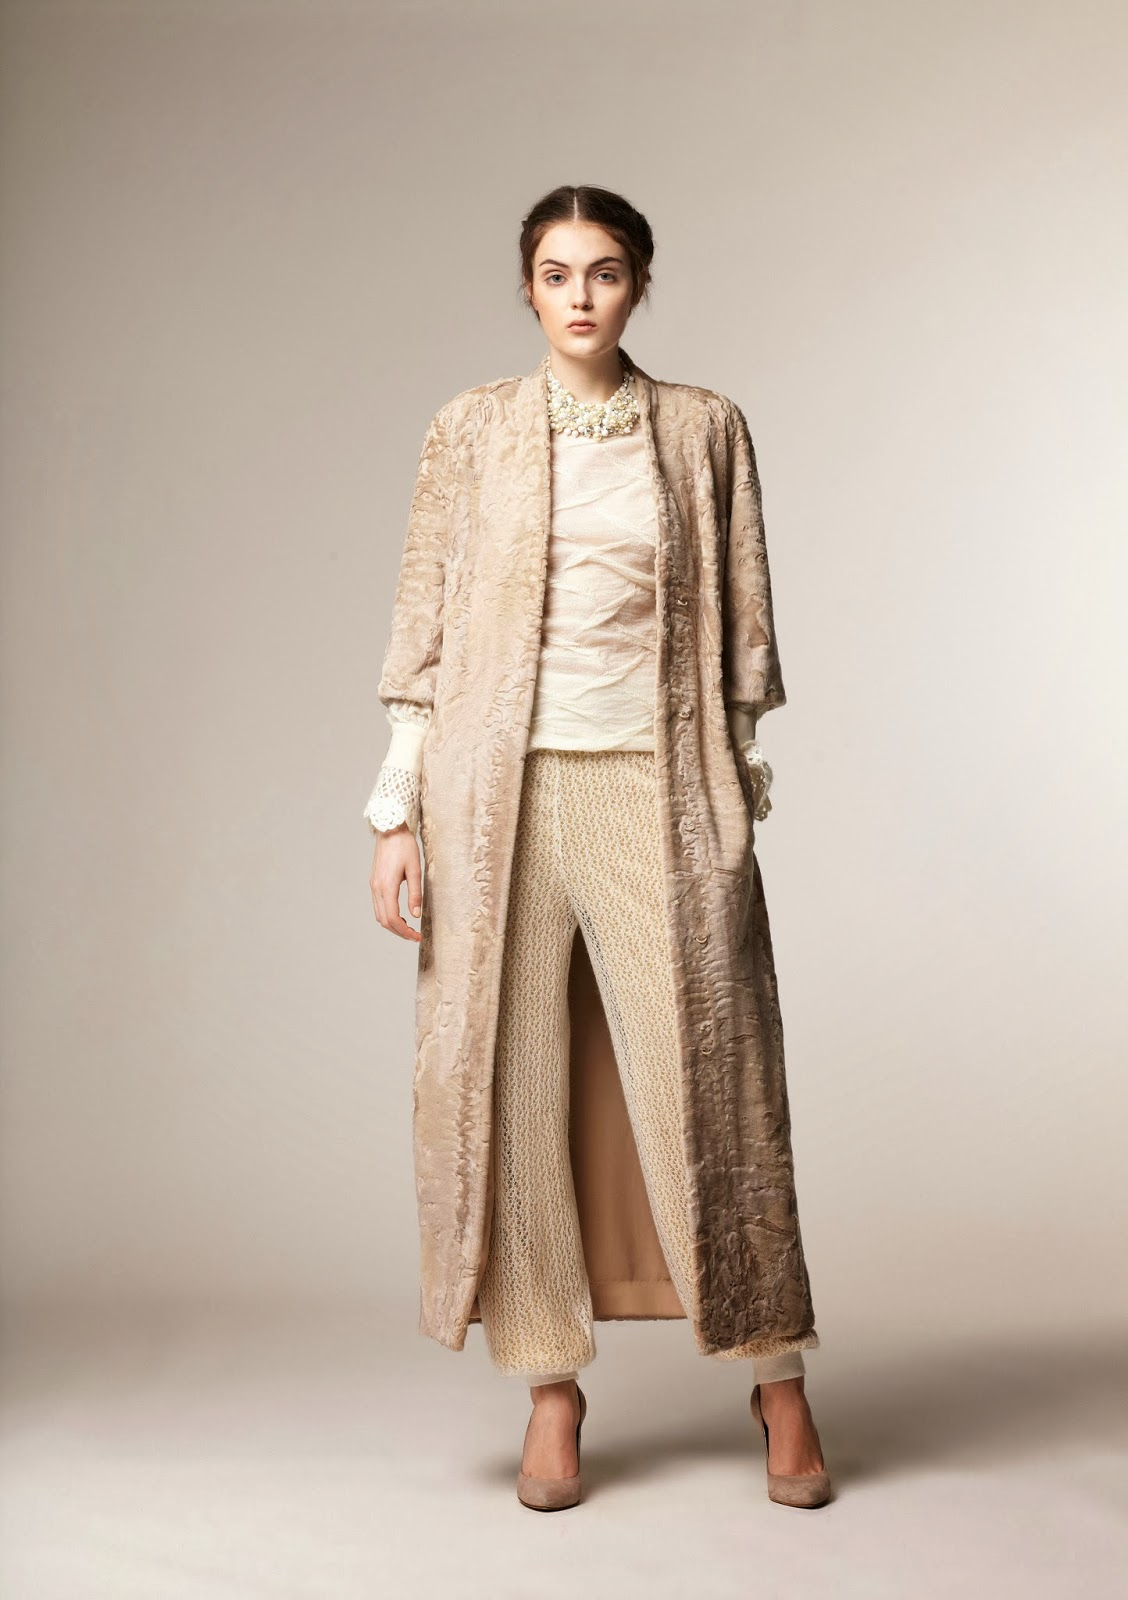 Floor length modest coat by A La Russe at Mode-sty